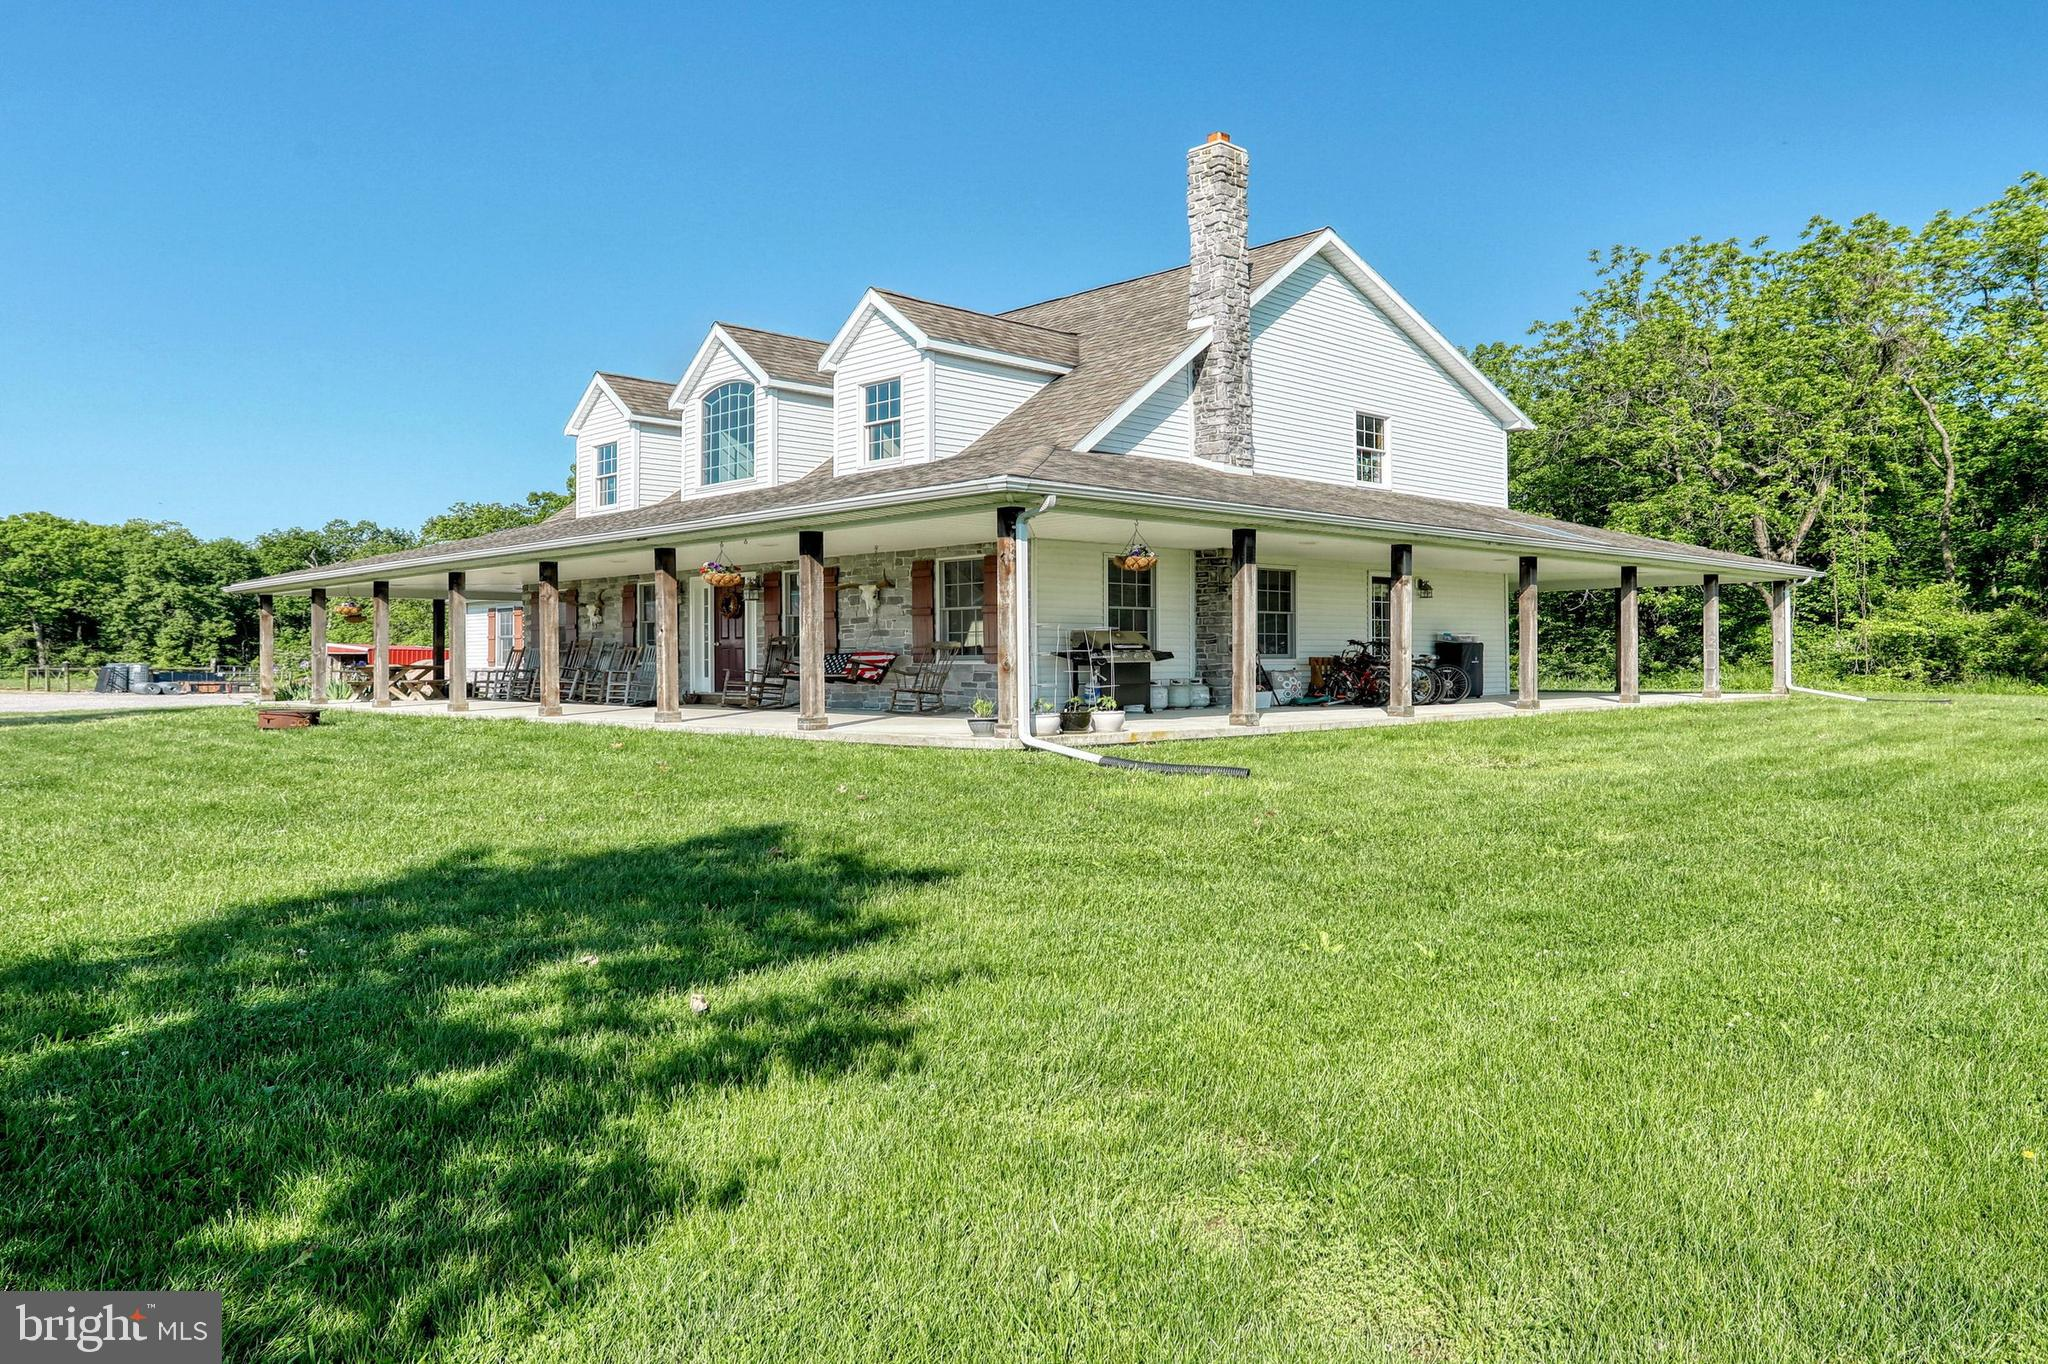 118 N WINDING ROAD, WELLSVILLE, PA 17365